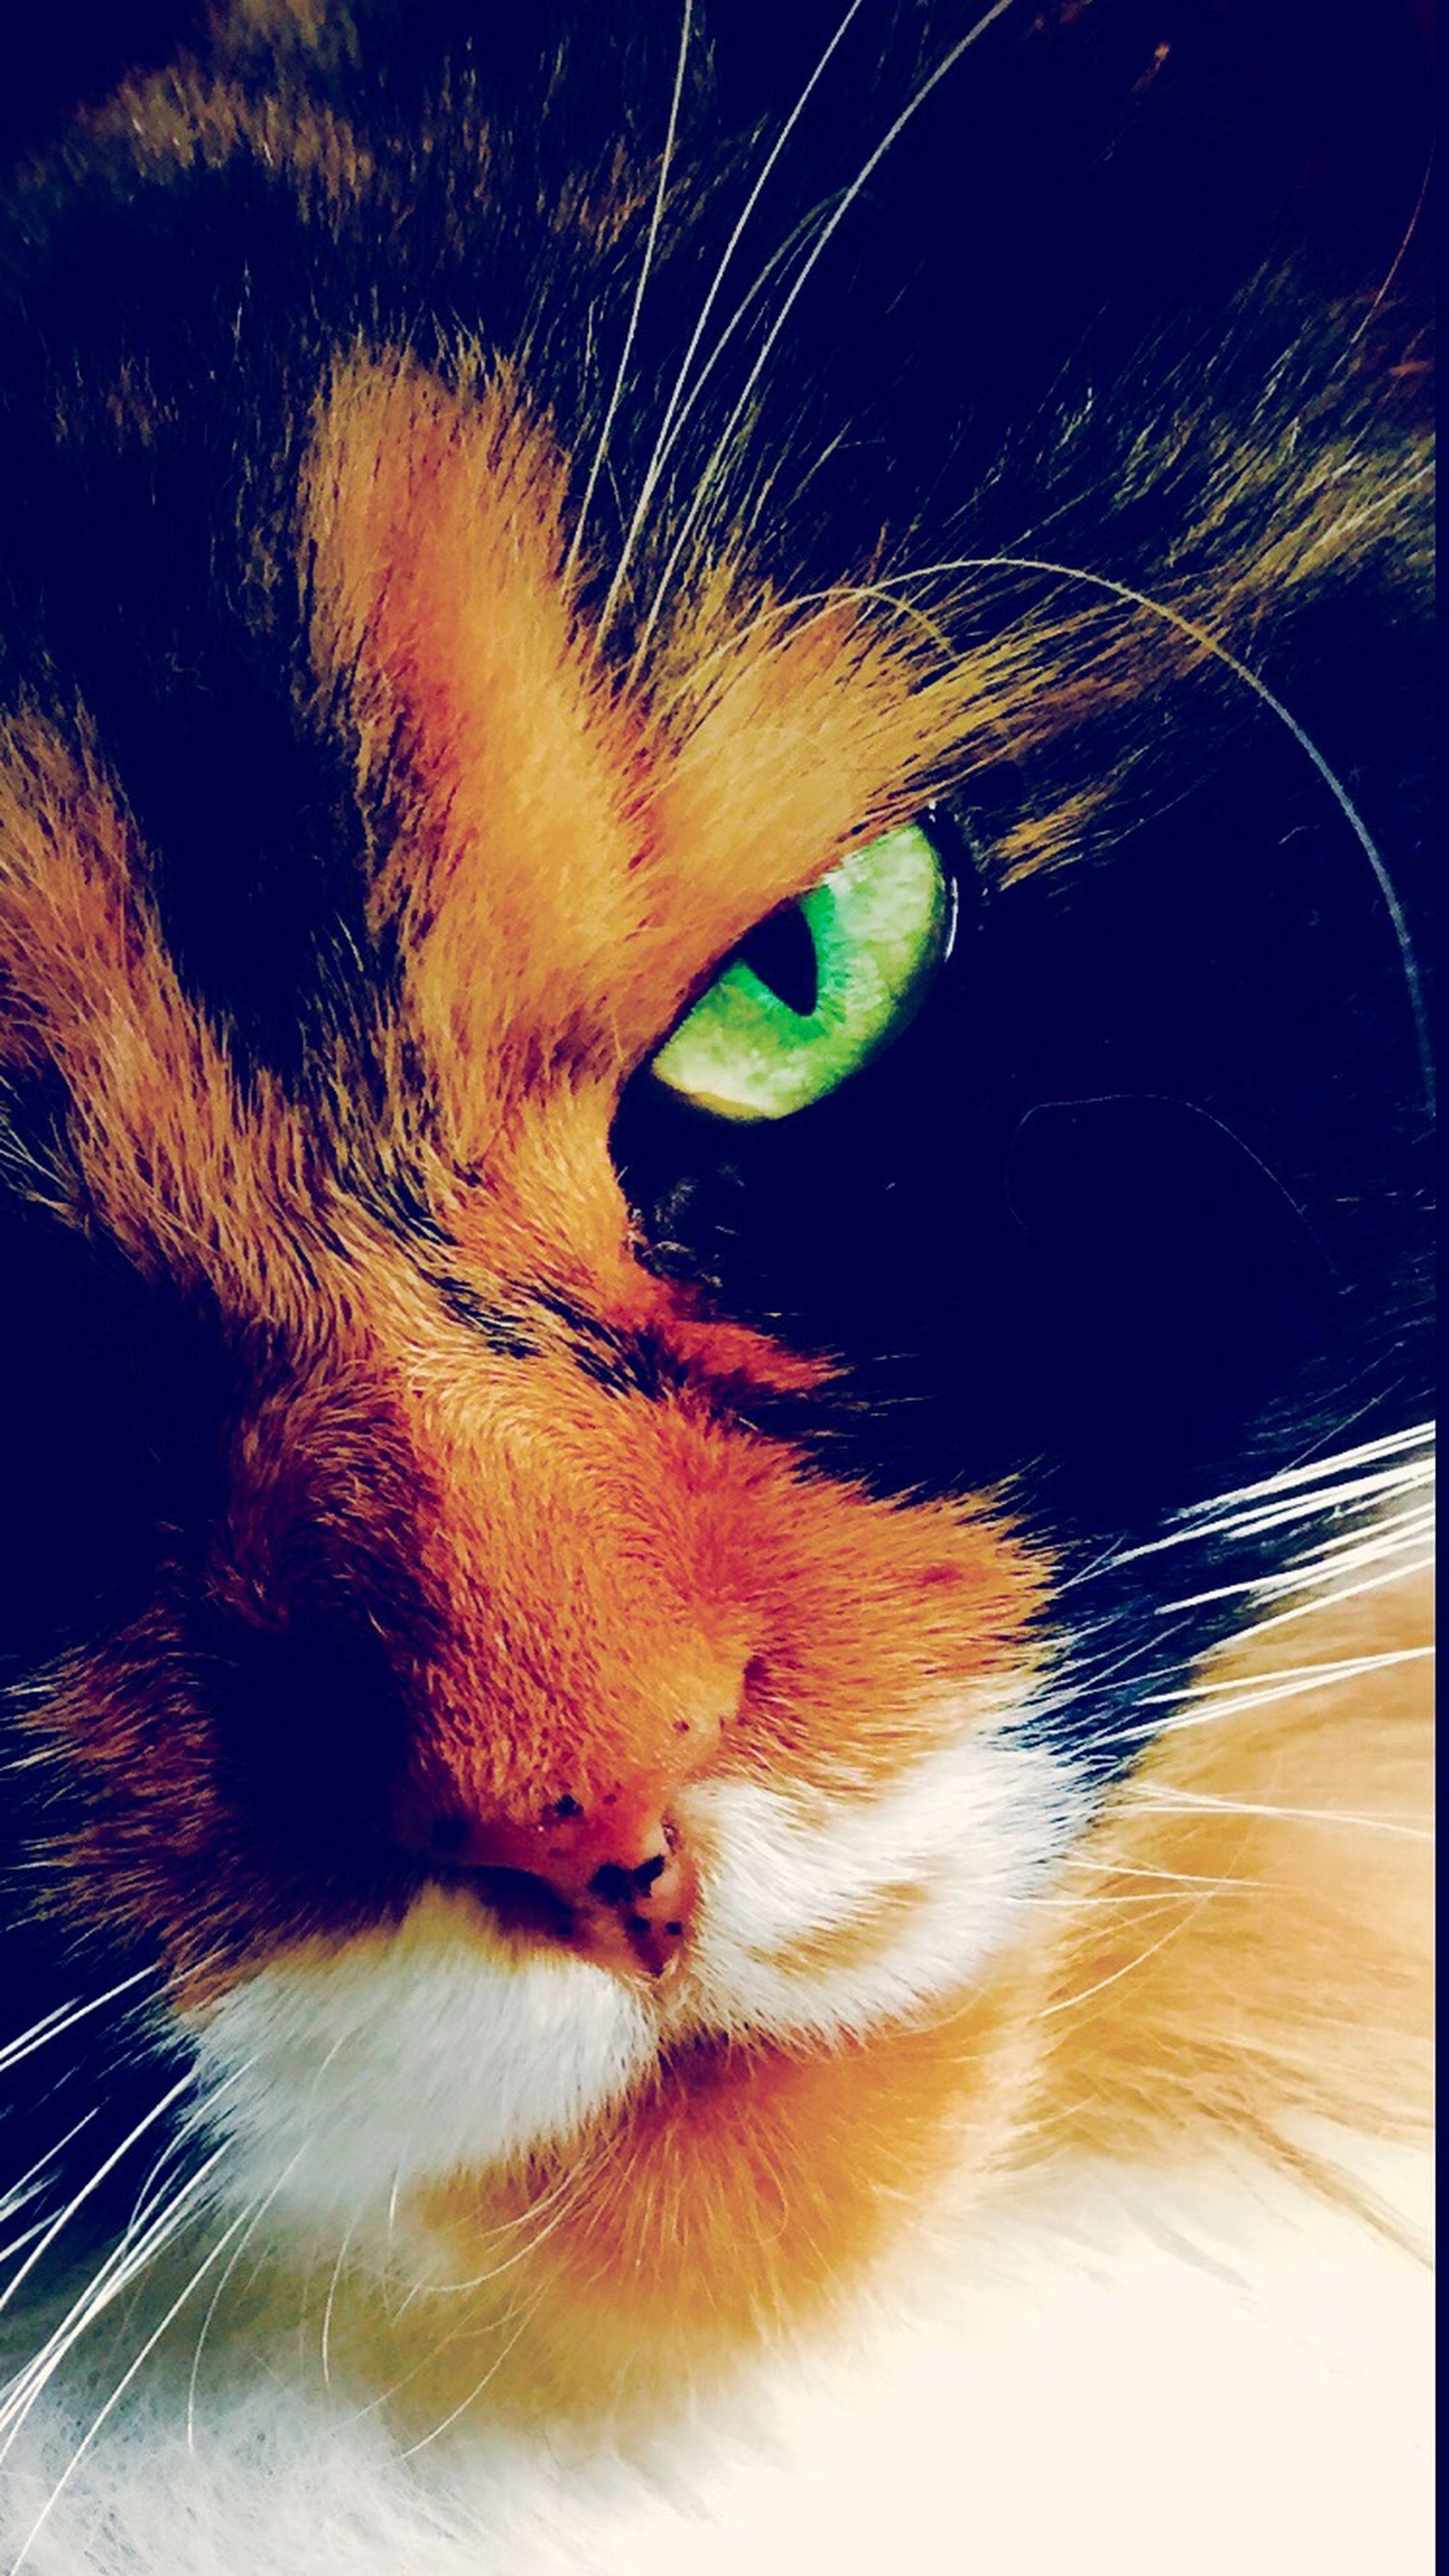 one animal, animal themes, domestic animals, pets, close-up, animal body part, mammal, domestic cat, animal head, cat, whisker, feline, indoors, part of, animal eye, no people, zoology, auto post production filter, looking away, animal hair